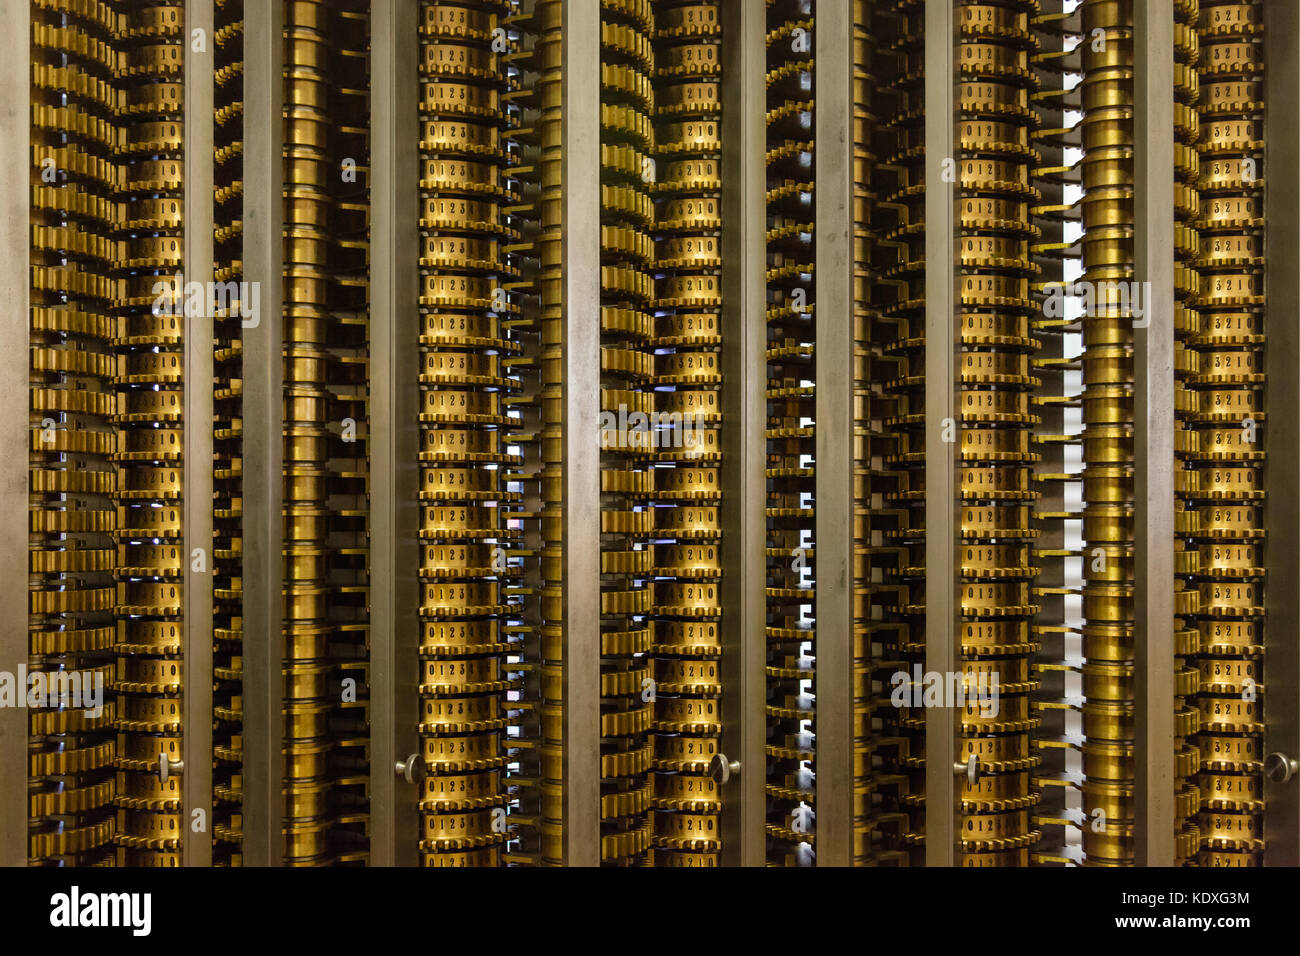 Difference Engine - Stock Image